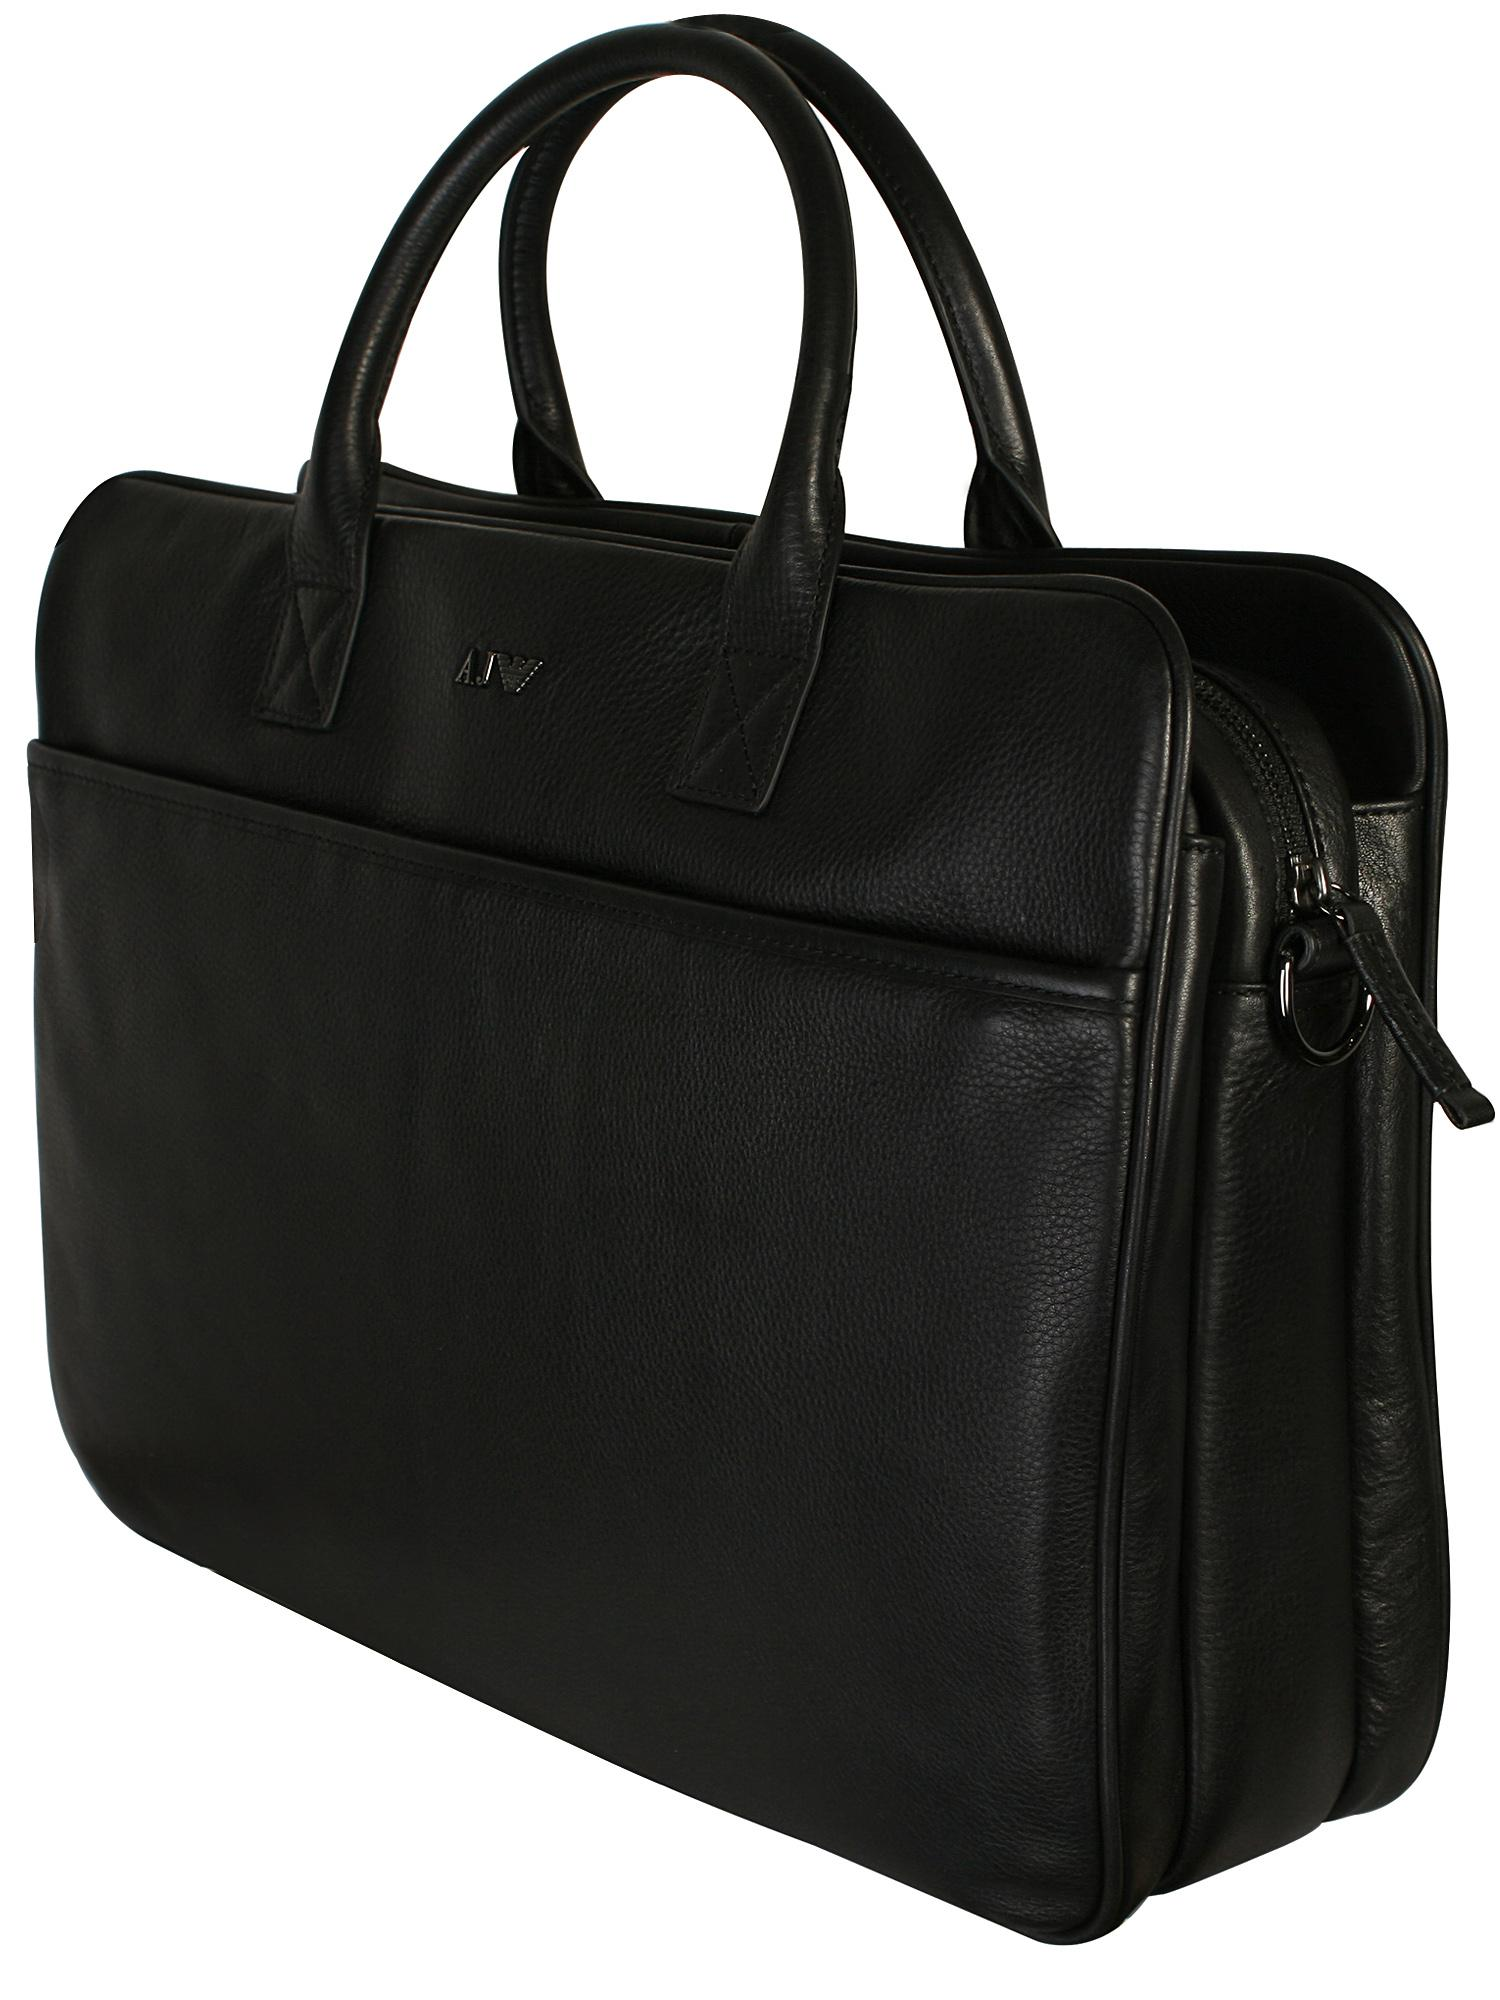 7776eebe614 Armani Jeans - Black Leather Briefcase Bag for Men - Lyst. View fullscreen